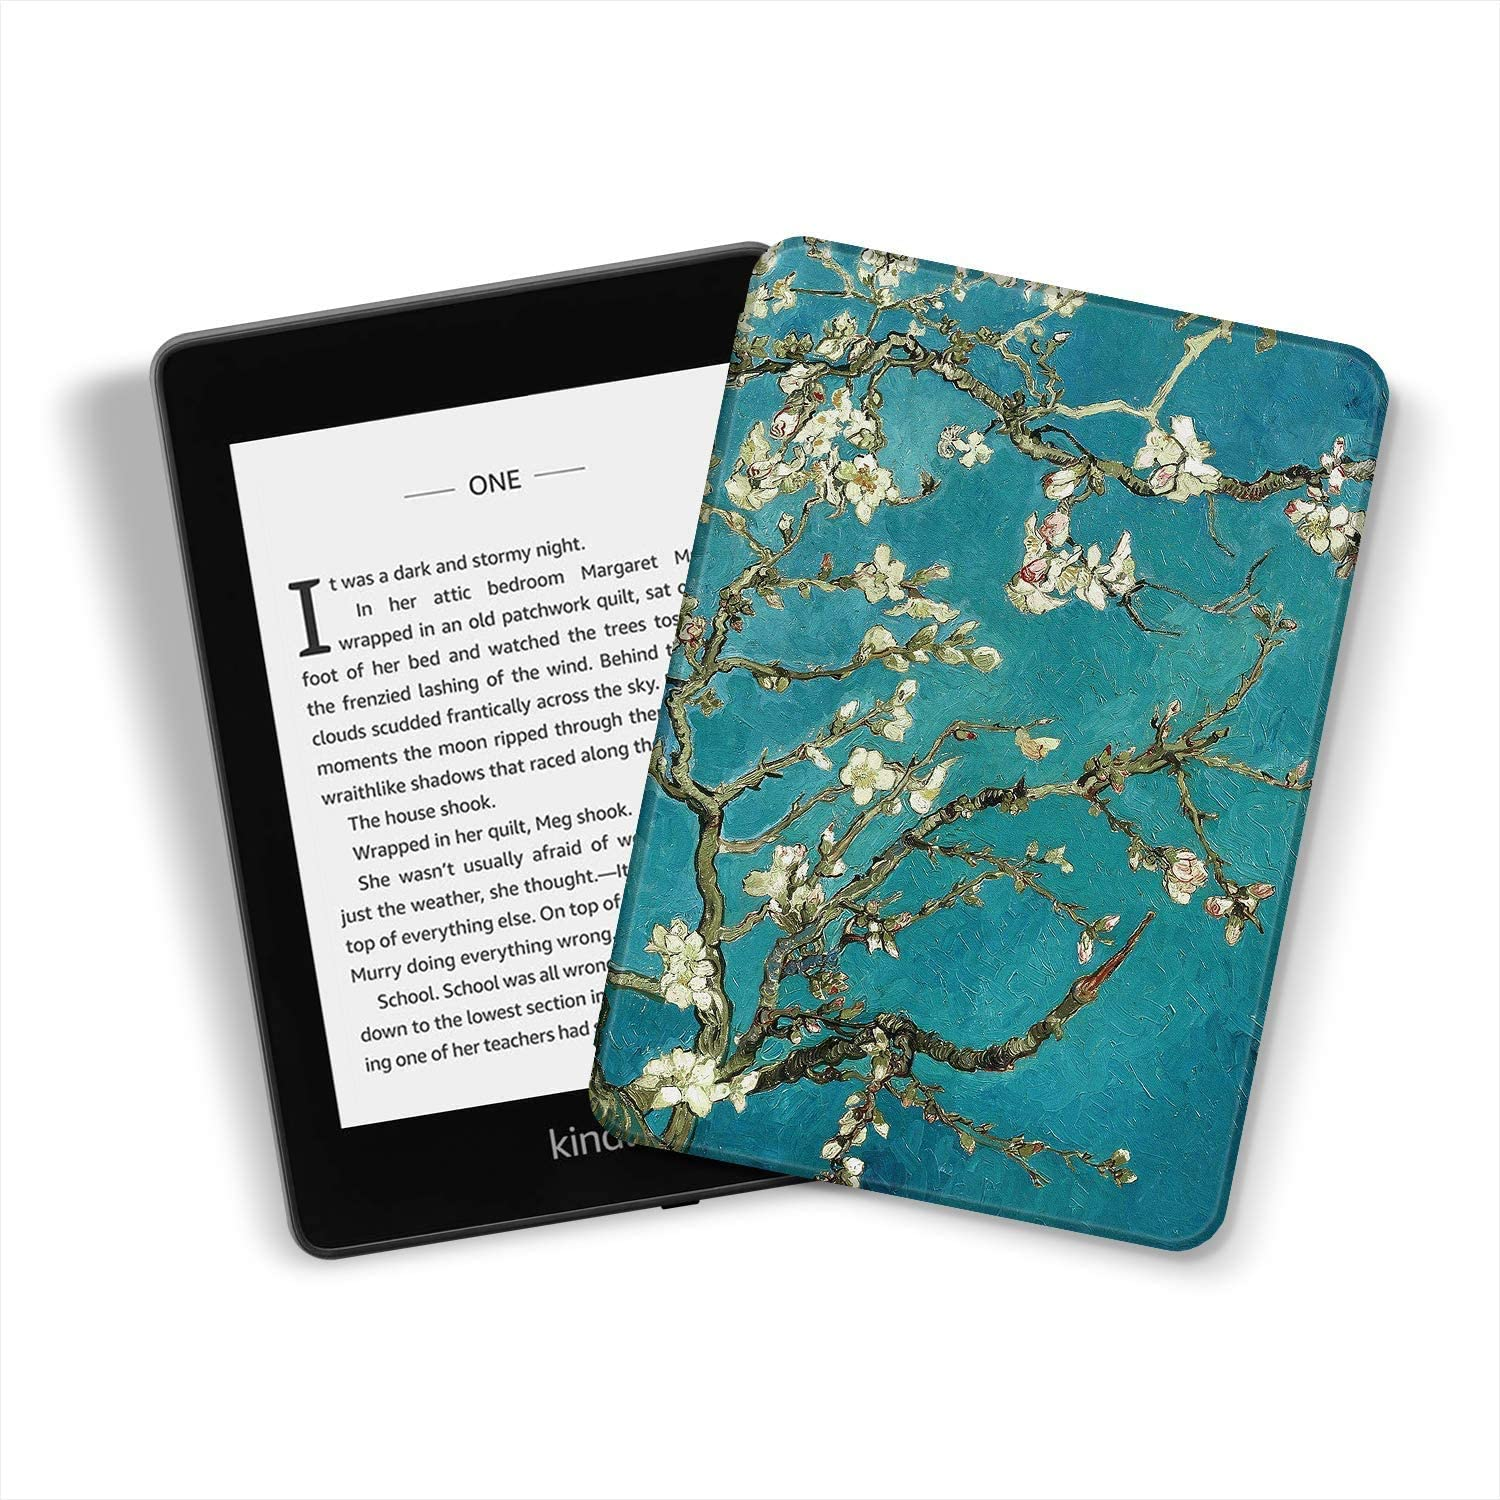 Library Kindle Paperwhite-4 Fits All Paperwhite Generations Prior to 2018 Water-Safe Case for Kindle Paperwhite PU Leather Smart Cover with Auto Wake//Sleep